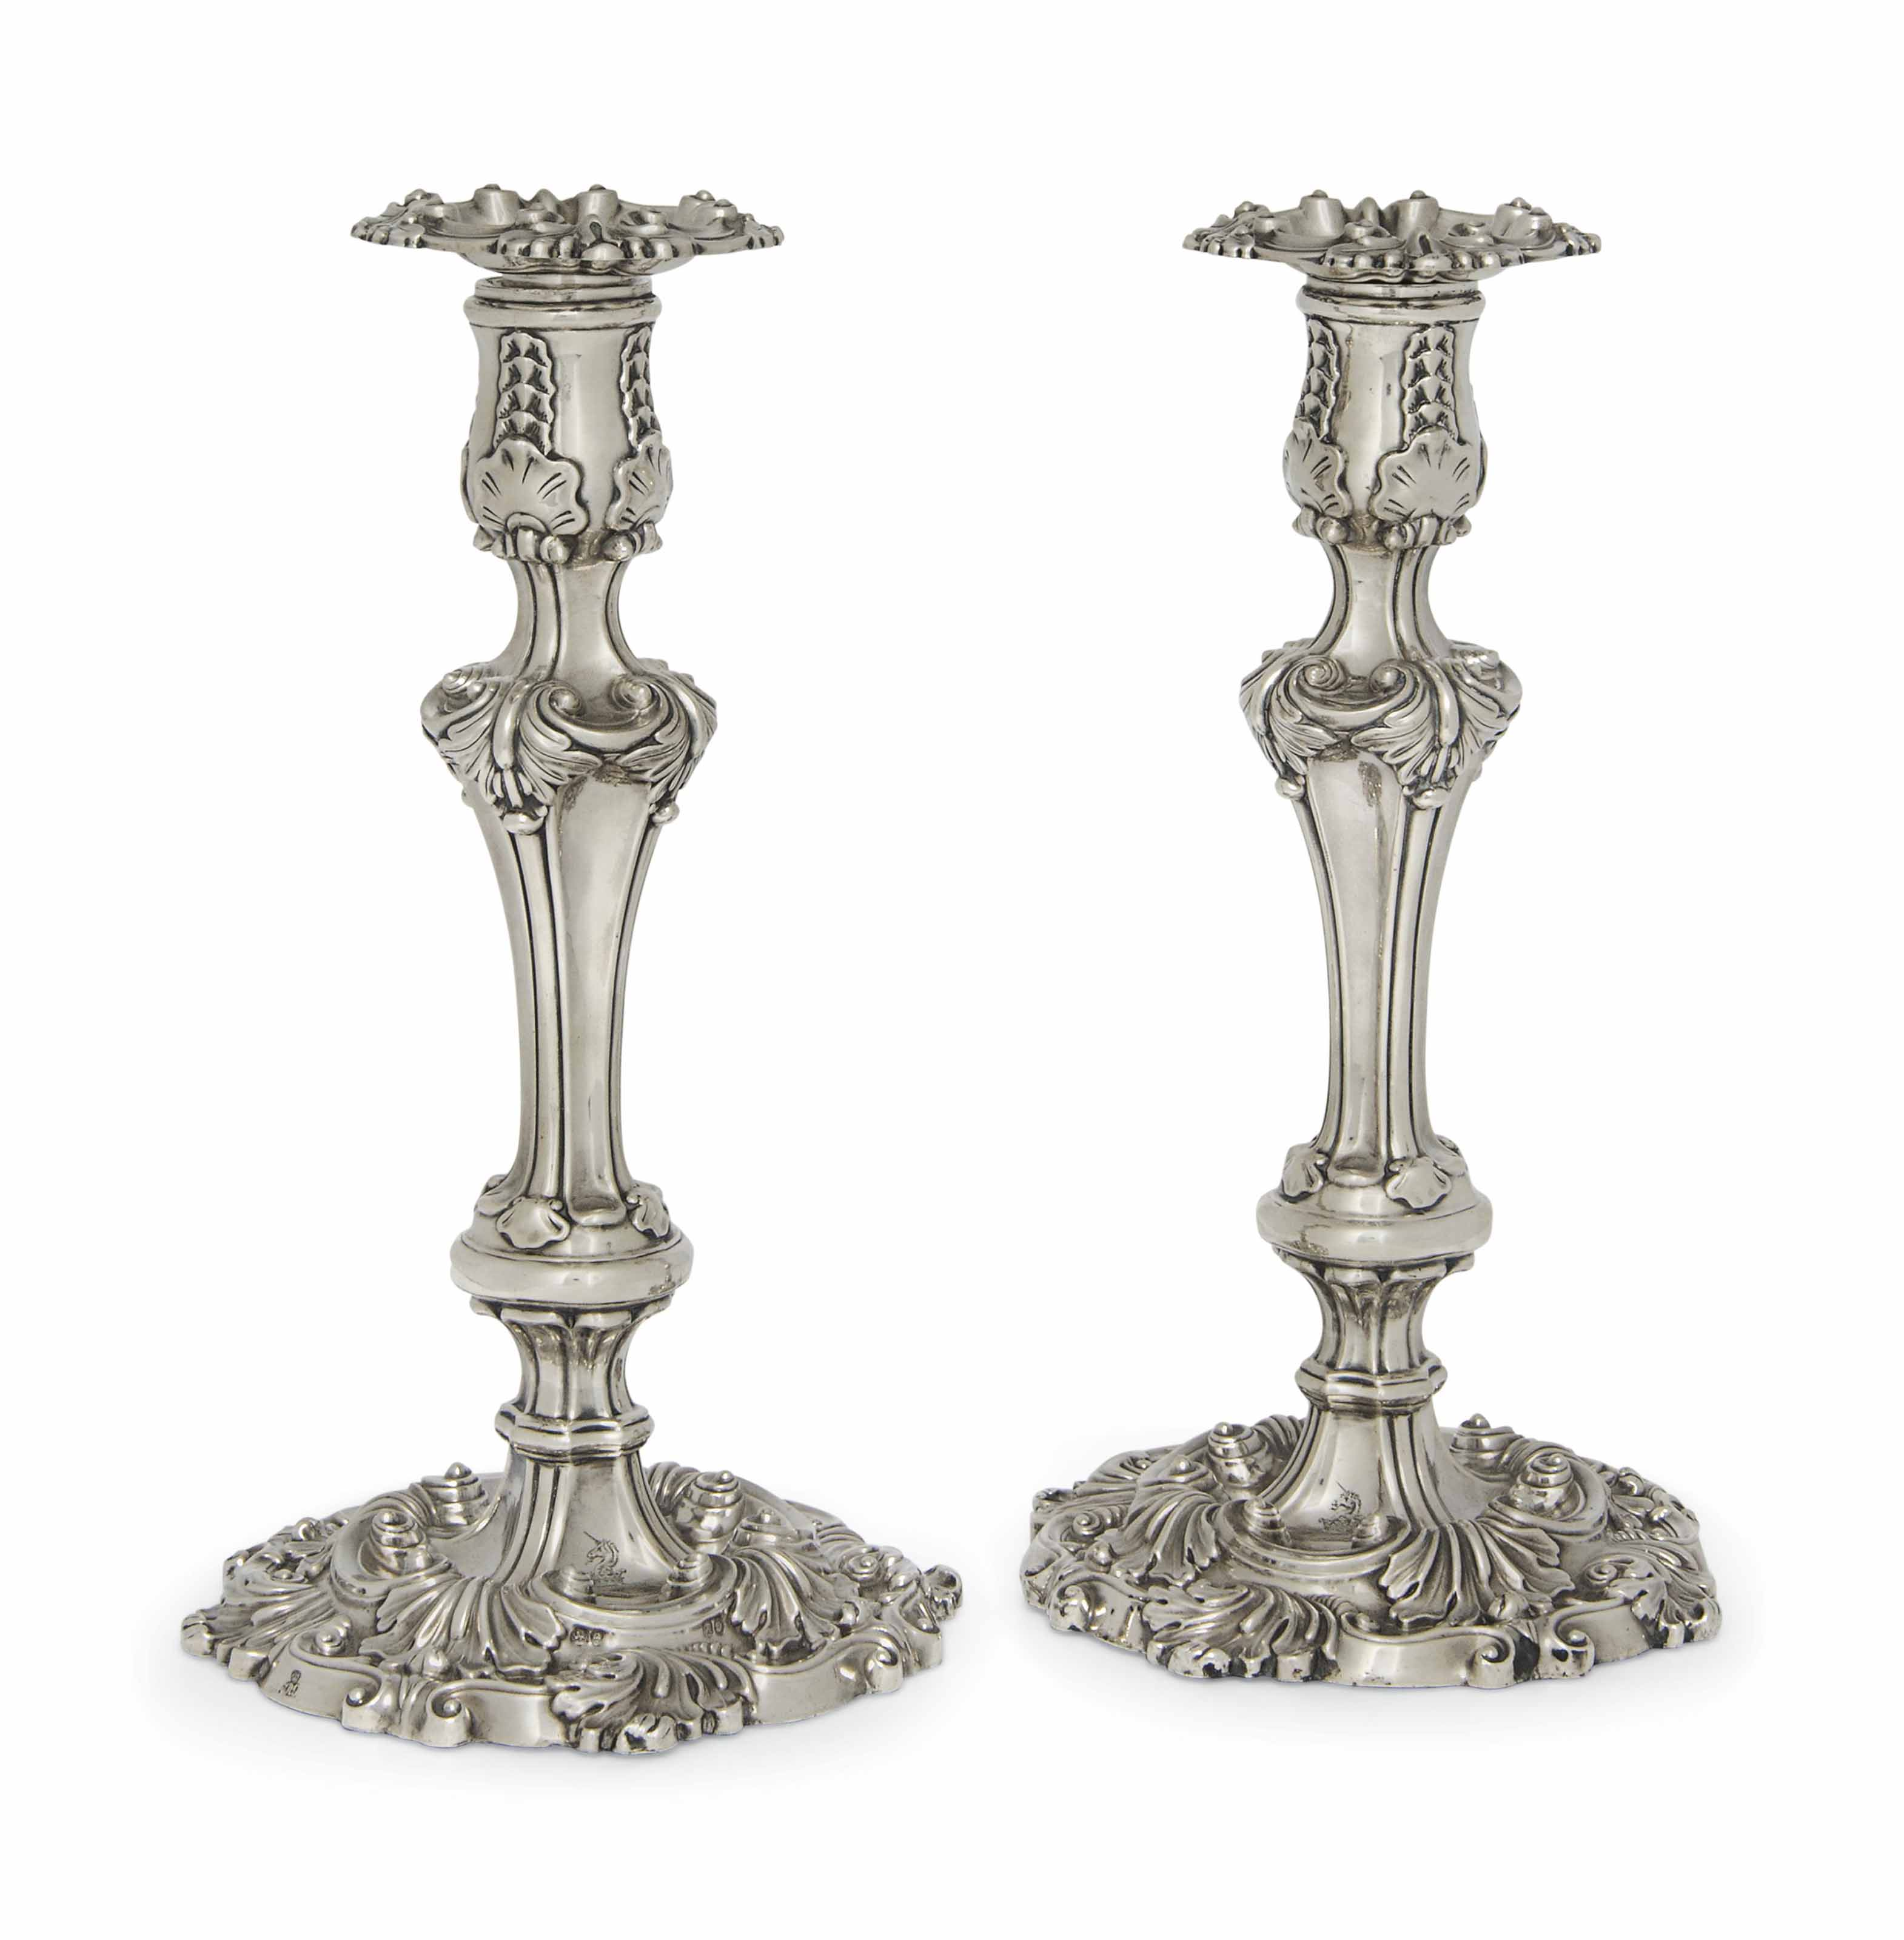 A PAIR OF WILLIAM IV ROCOCO RE